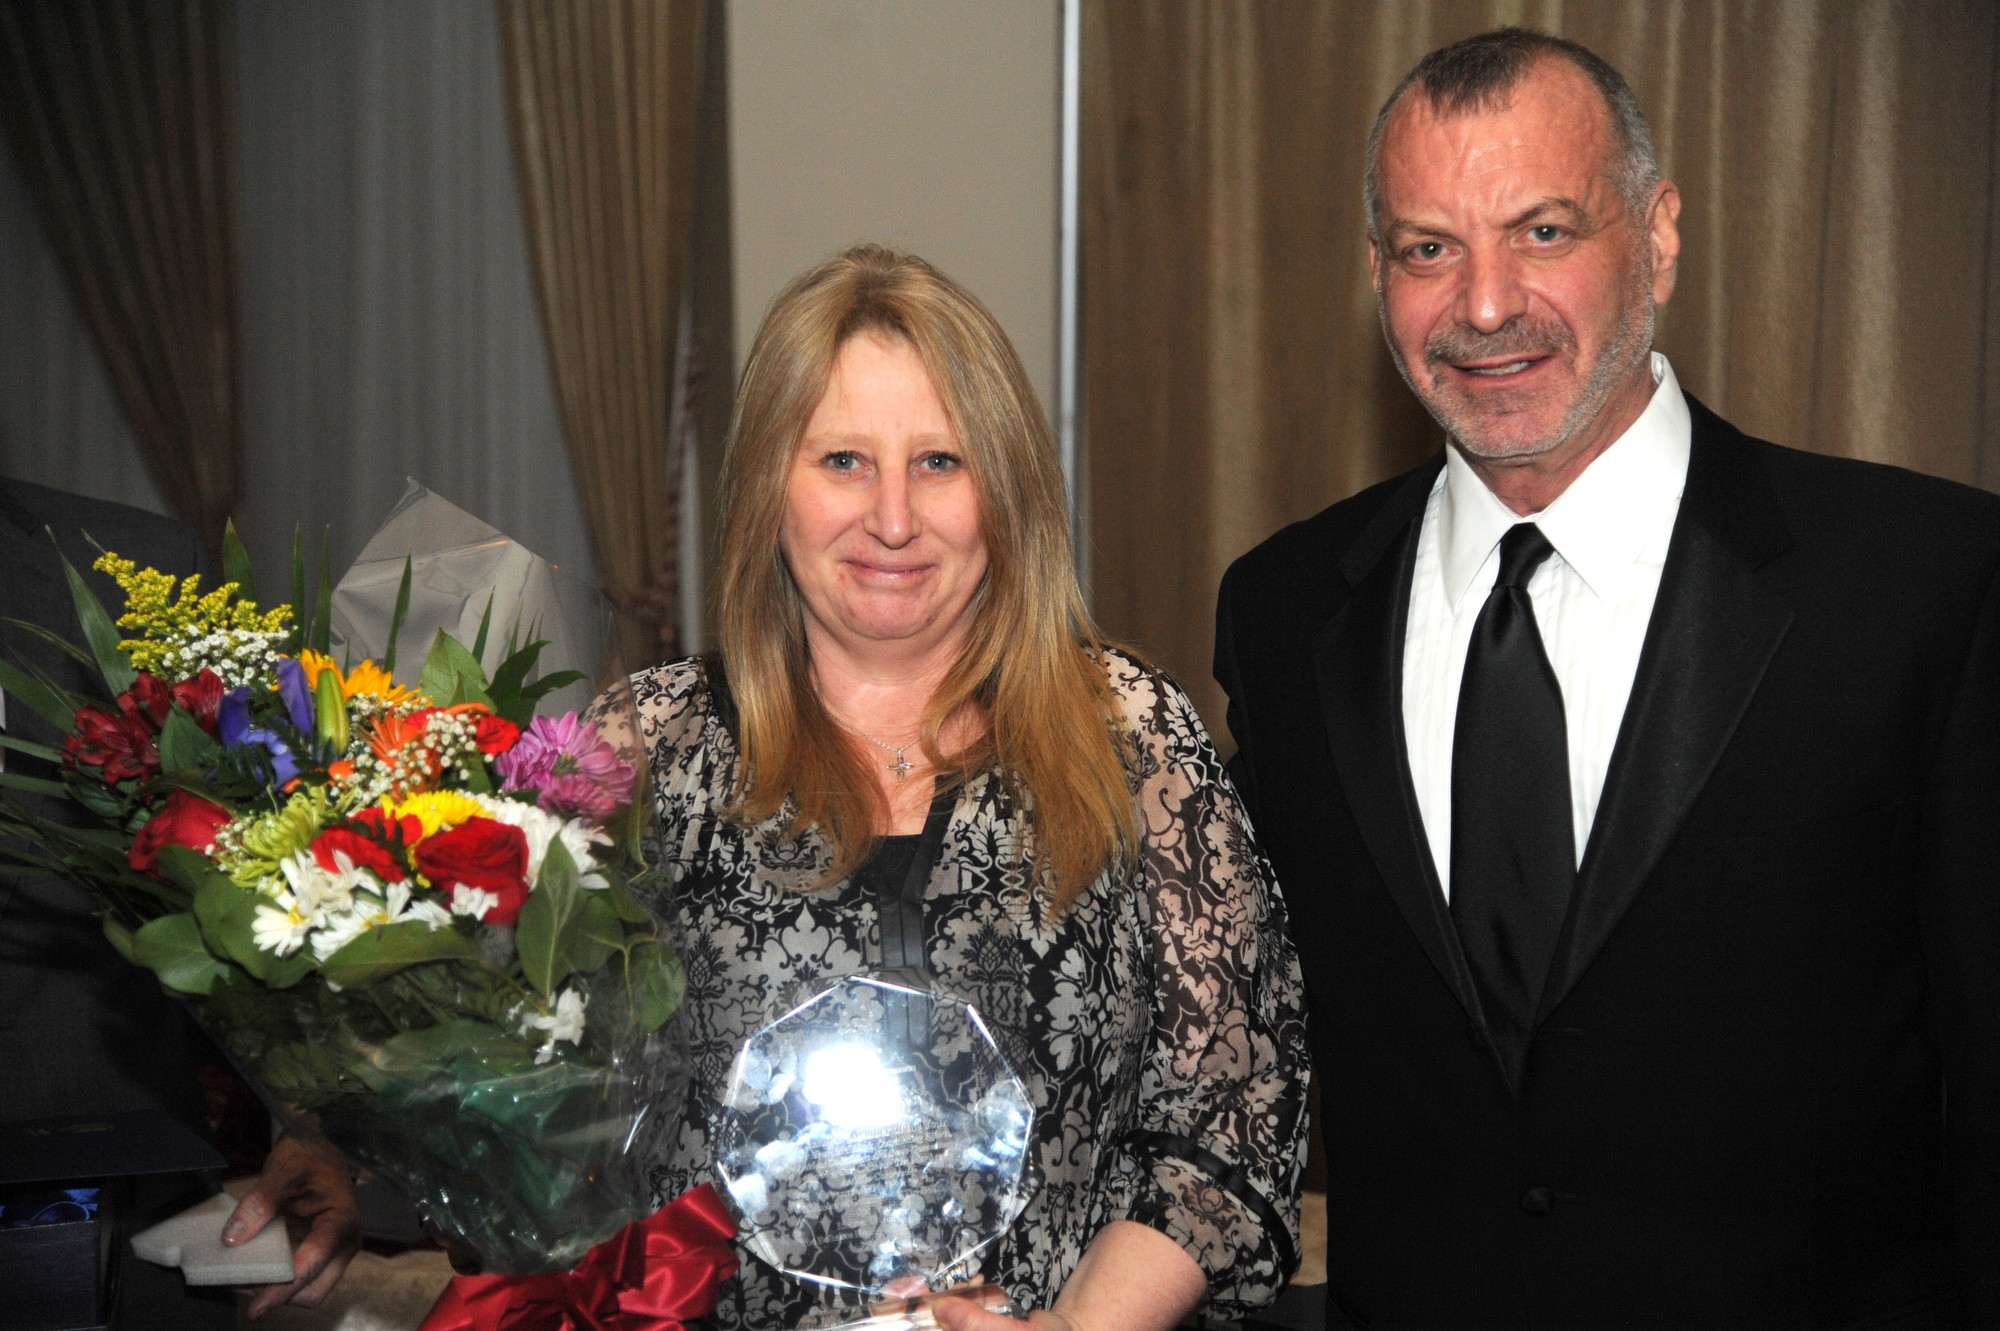 Jackie Fithian, of Vital Signs Plus, Inc., received the Chamber Member of the Year award.